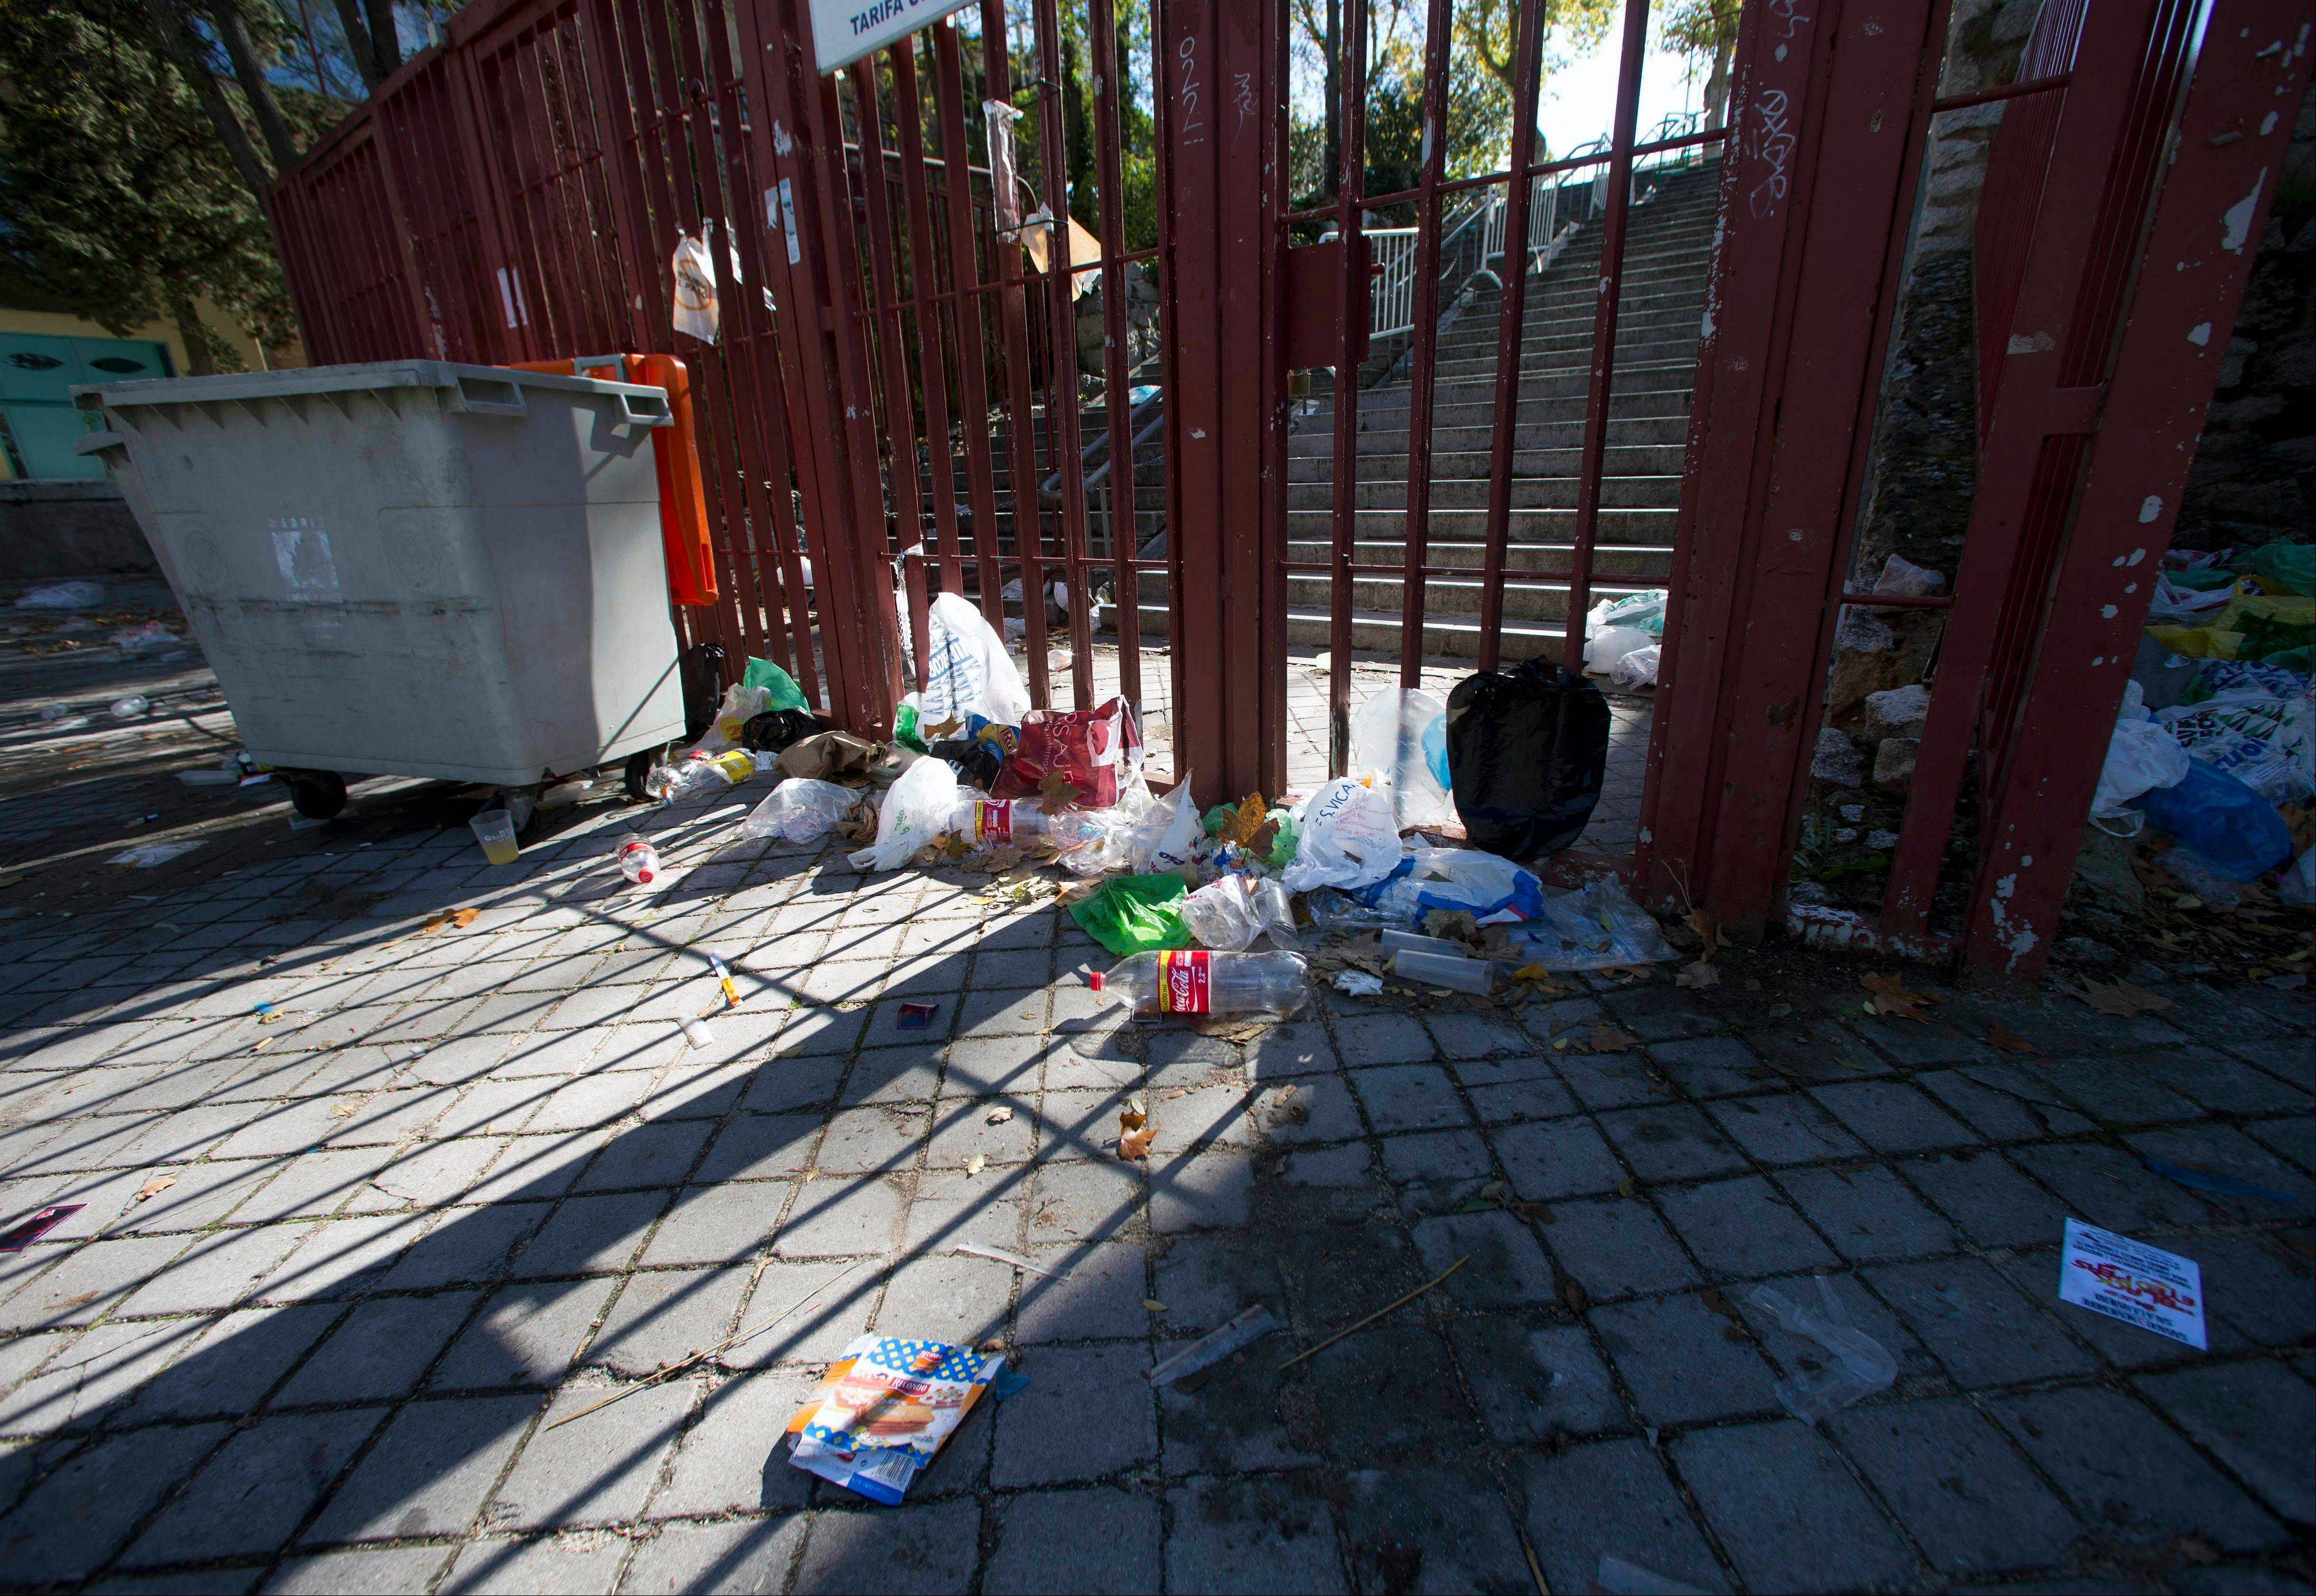 Empty bottles and other debris lie outside the closed gates of the Madrid Arena venue in Madrid, Thursday Nov. 1, 2012. Three women have been killed and two injured in a stampede during a large Halloween Night party at the venue.